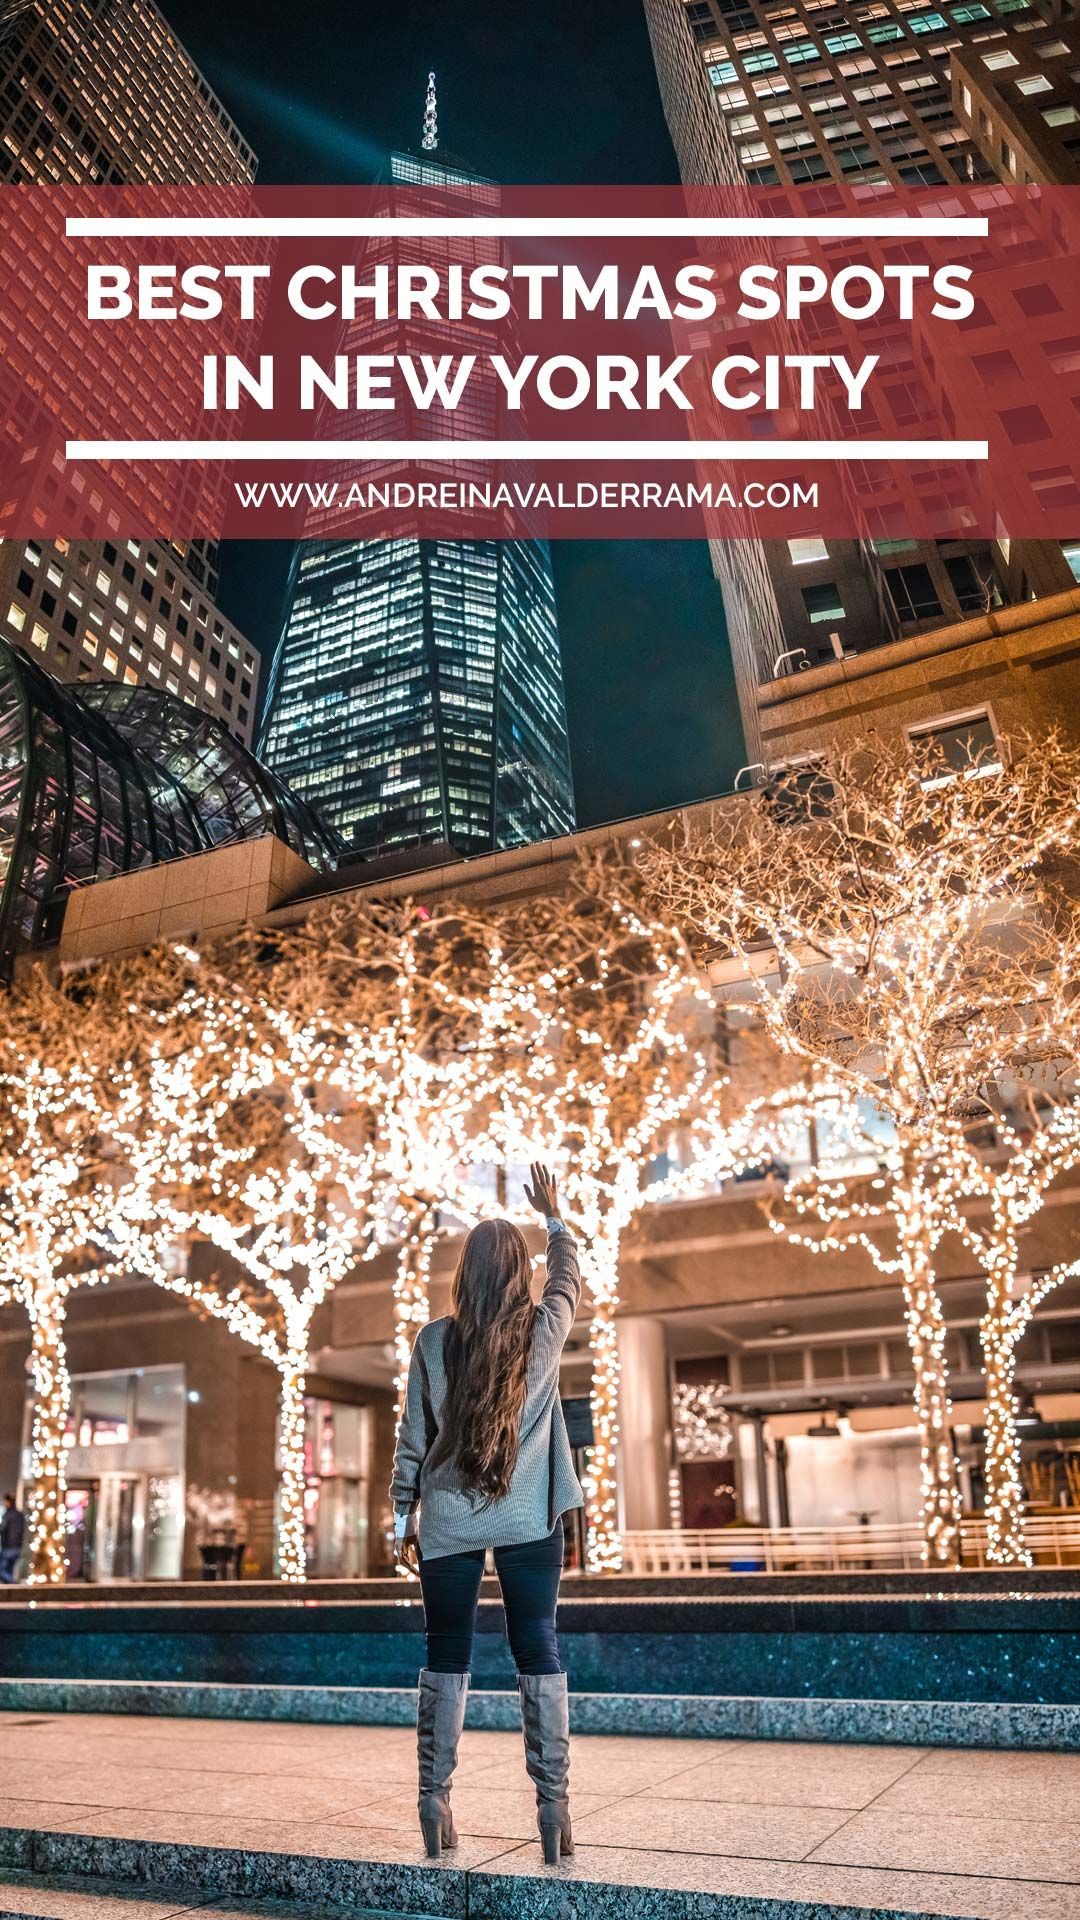 CLICK HERE if you are planning to spend the holidays in New York City, this guide is definitely going to help you get the most of it.  #christmasinnewyork #travel #nightphotography #christmasspots #christmasphotoshoot